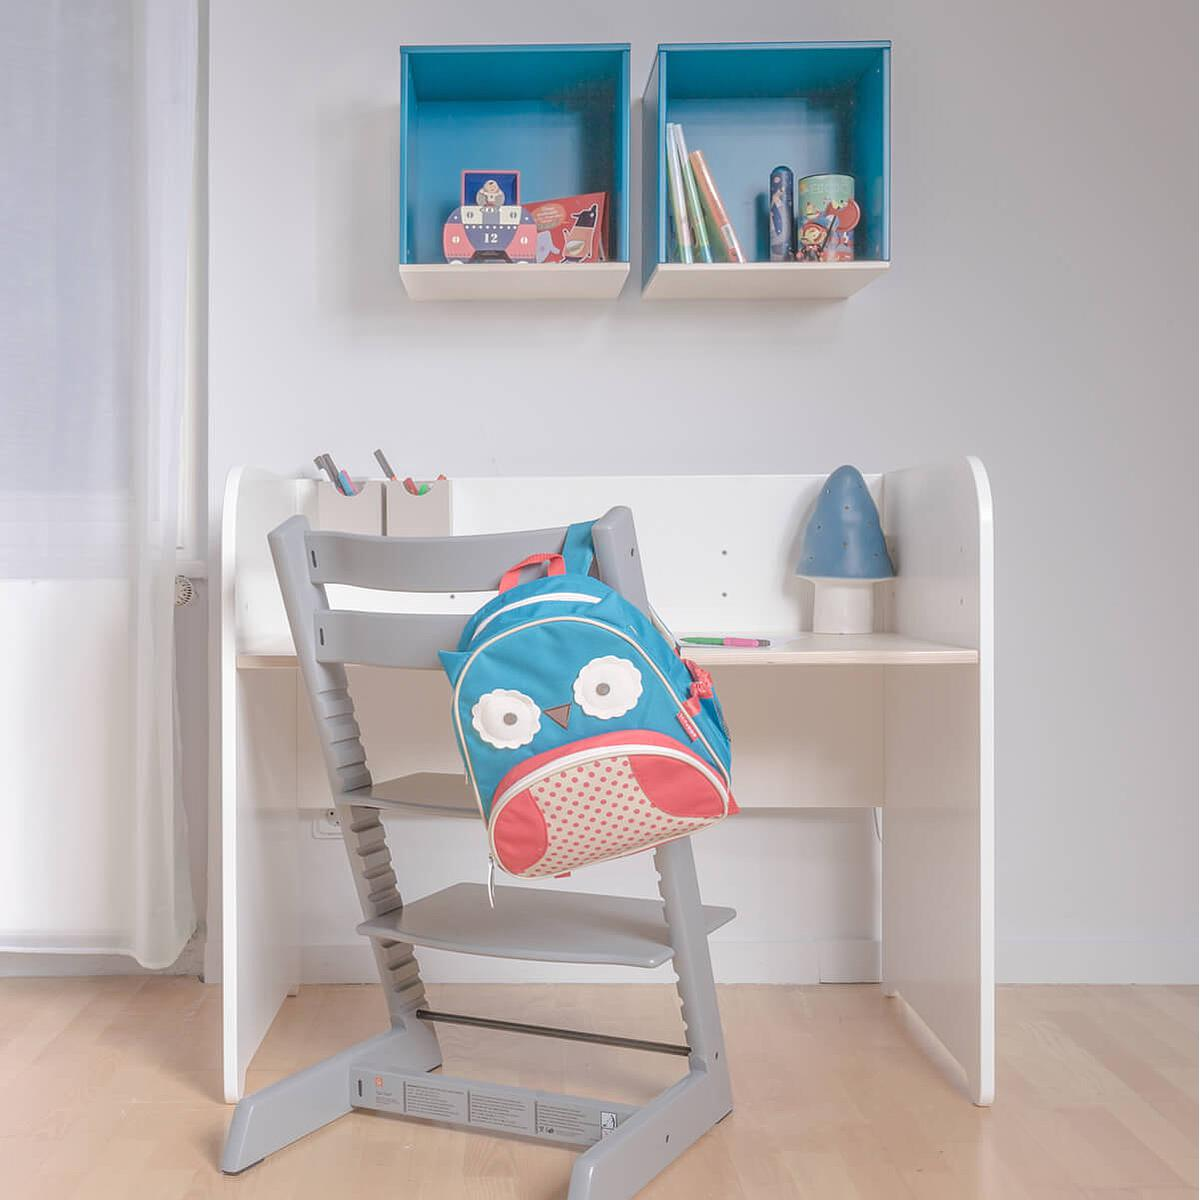 Cube mural COLORFLEX Abitare Kids white